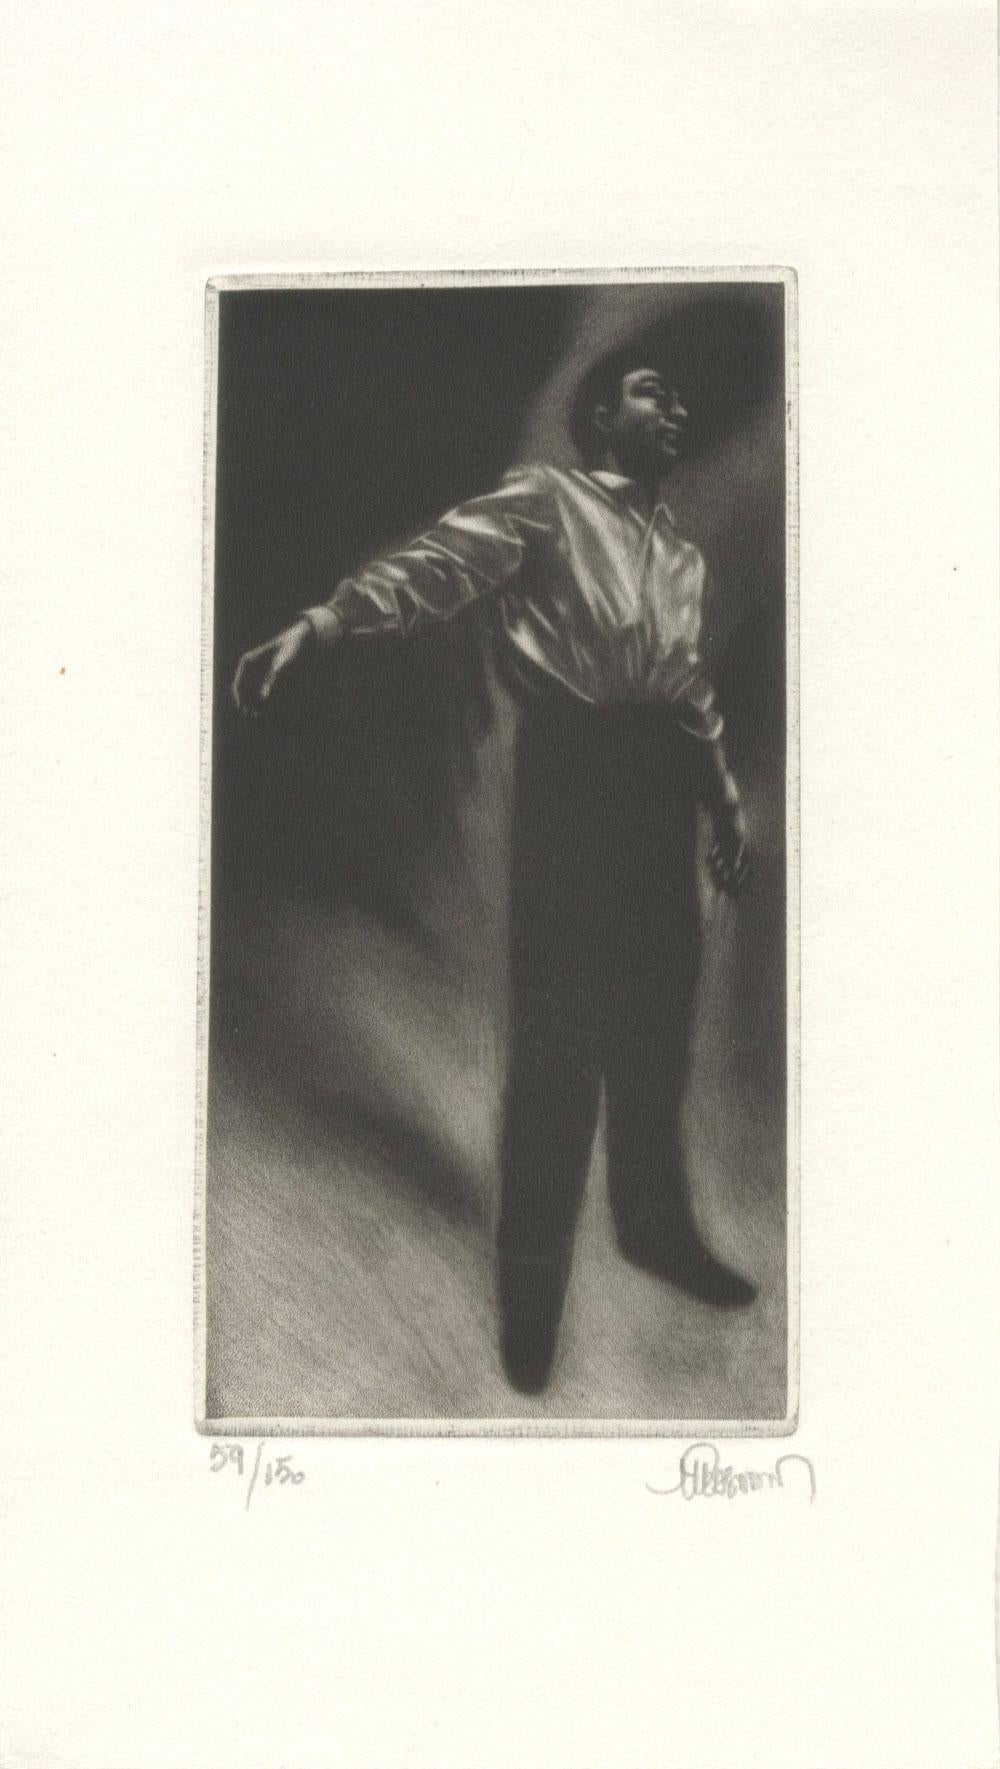 Man with Outstretched Arms